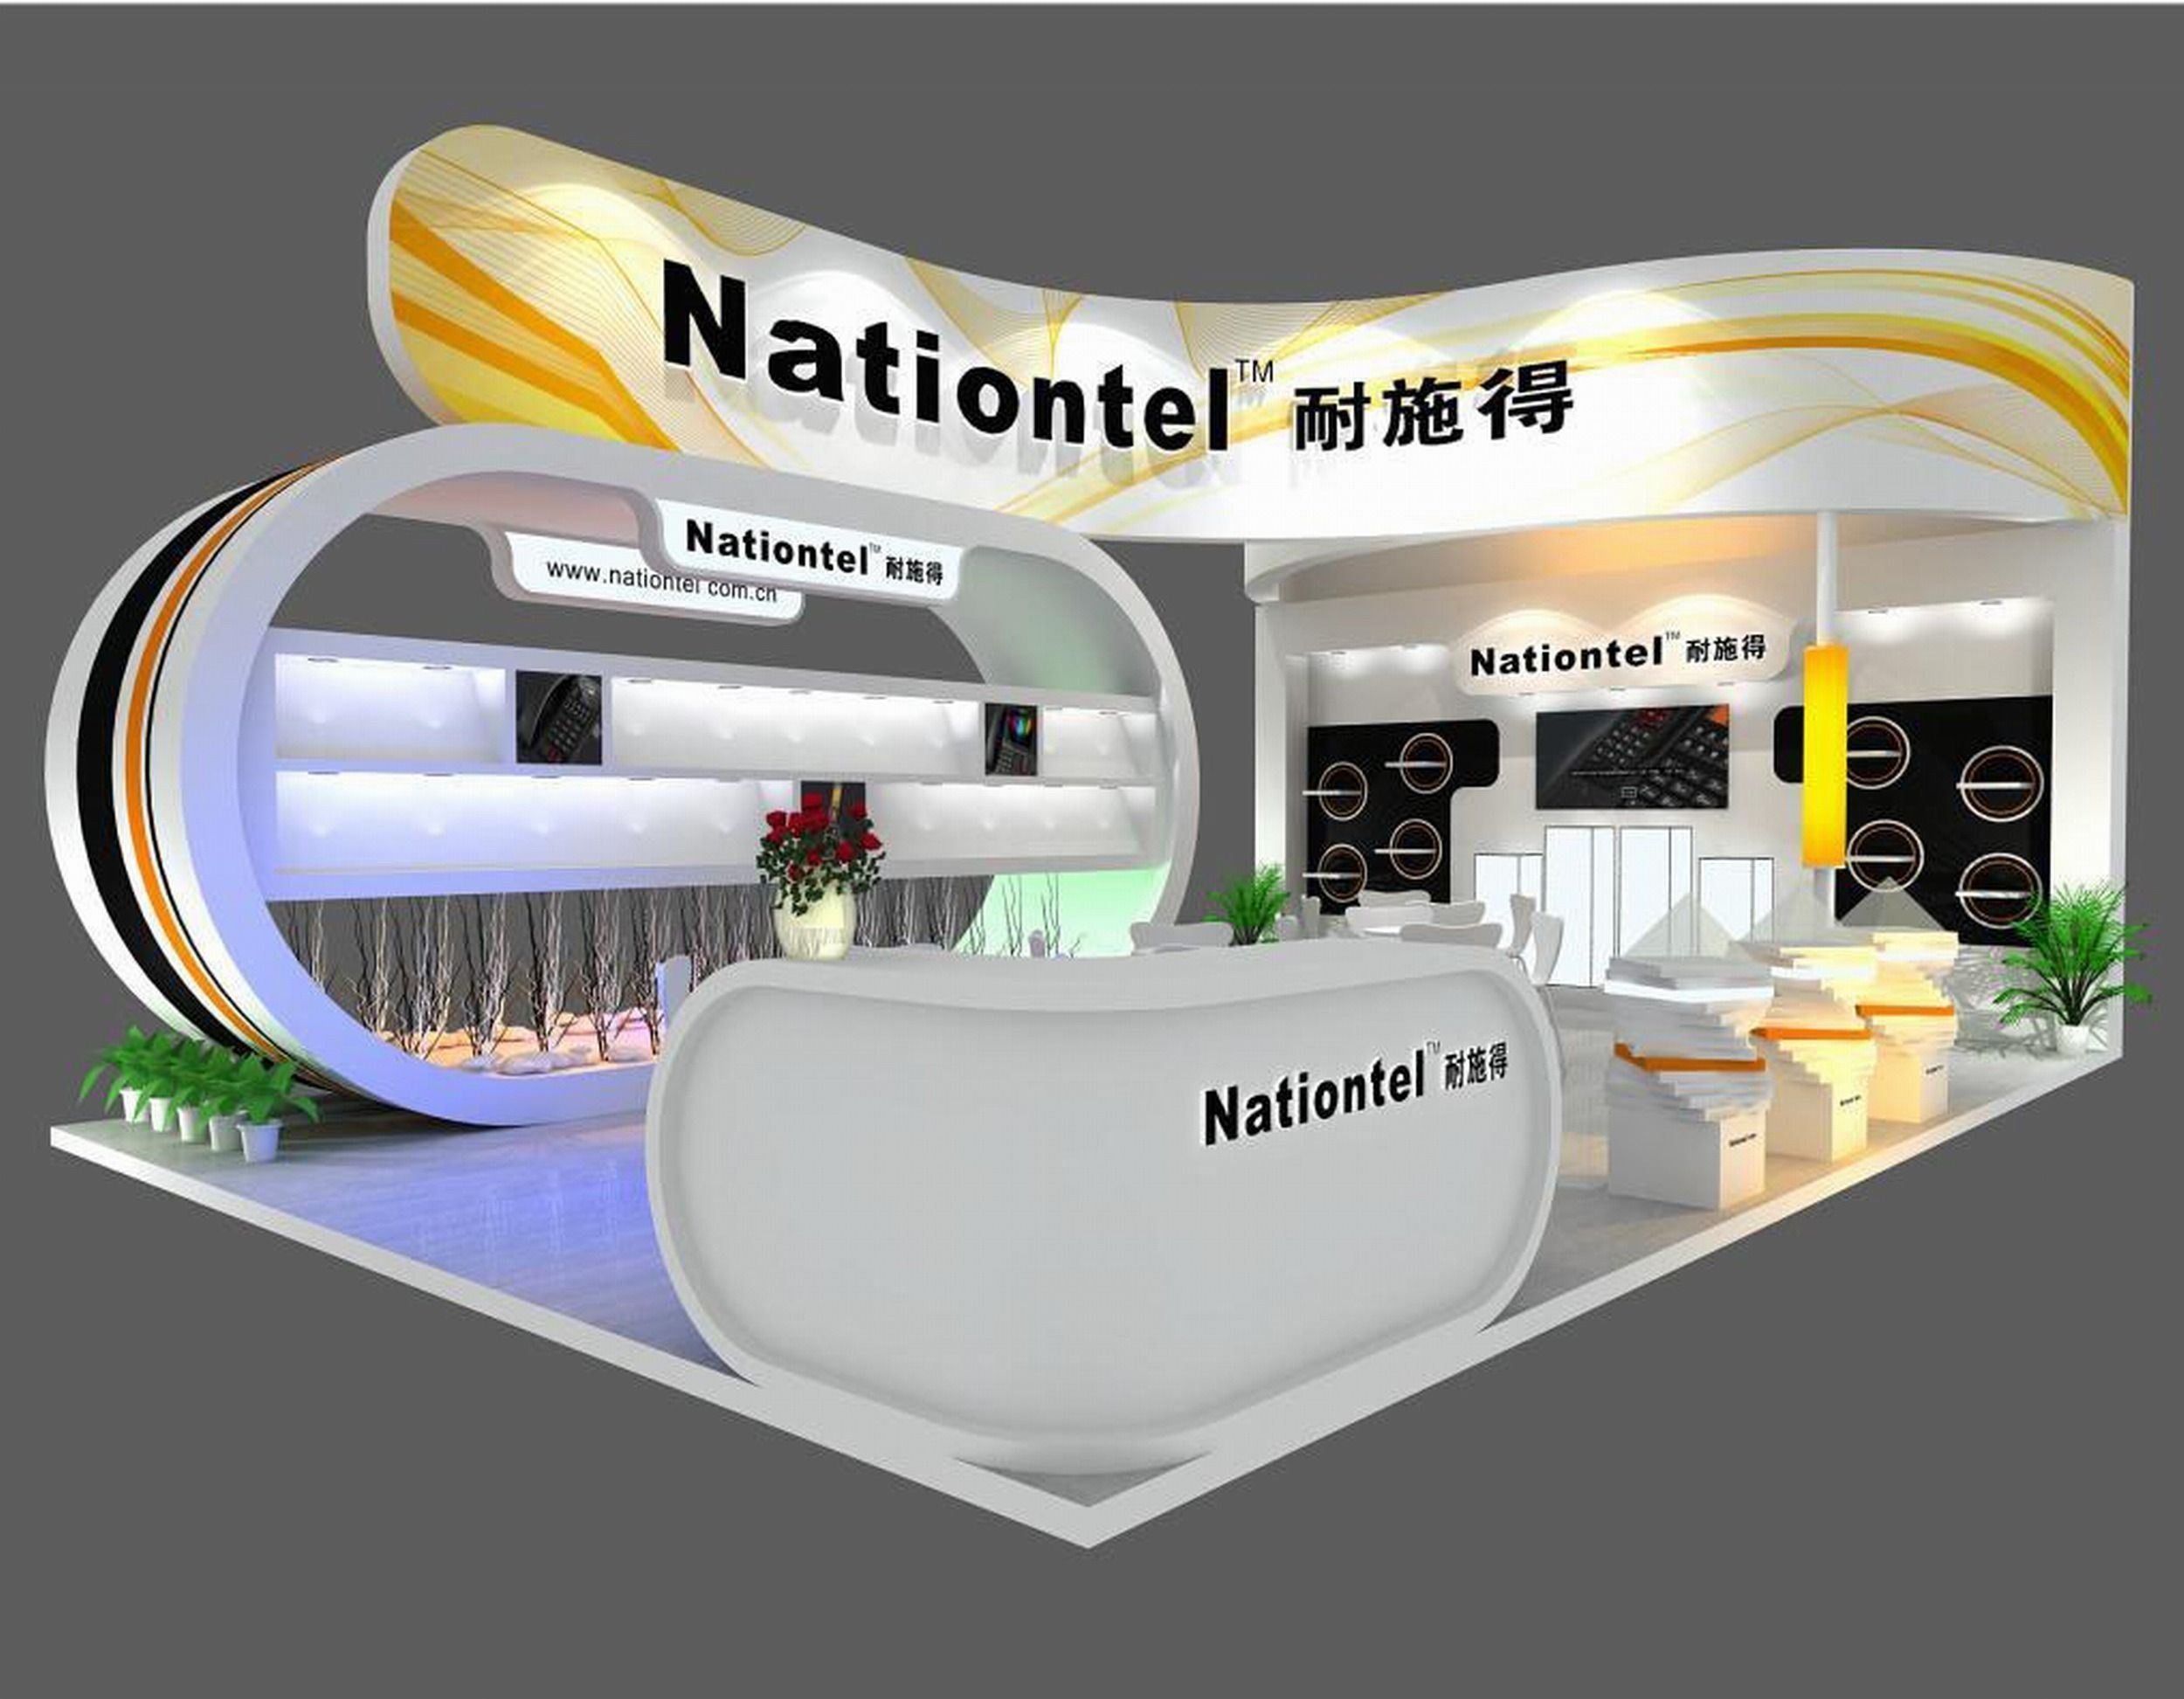 Exhibition Stand Designer Job Description : Exhibition area dmax  d model max